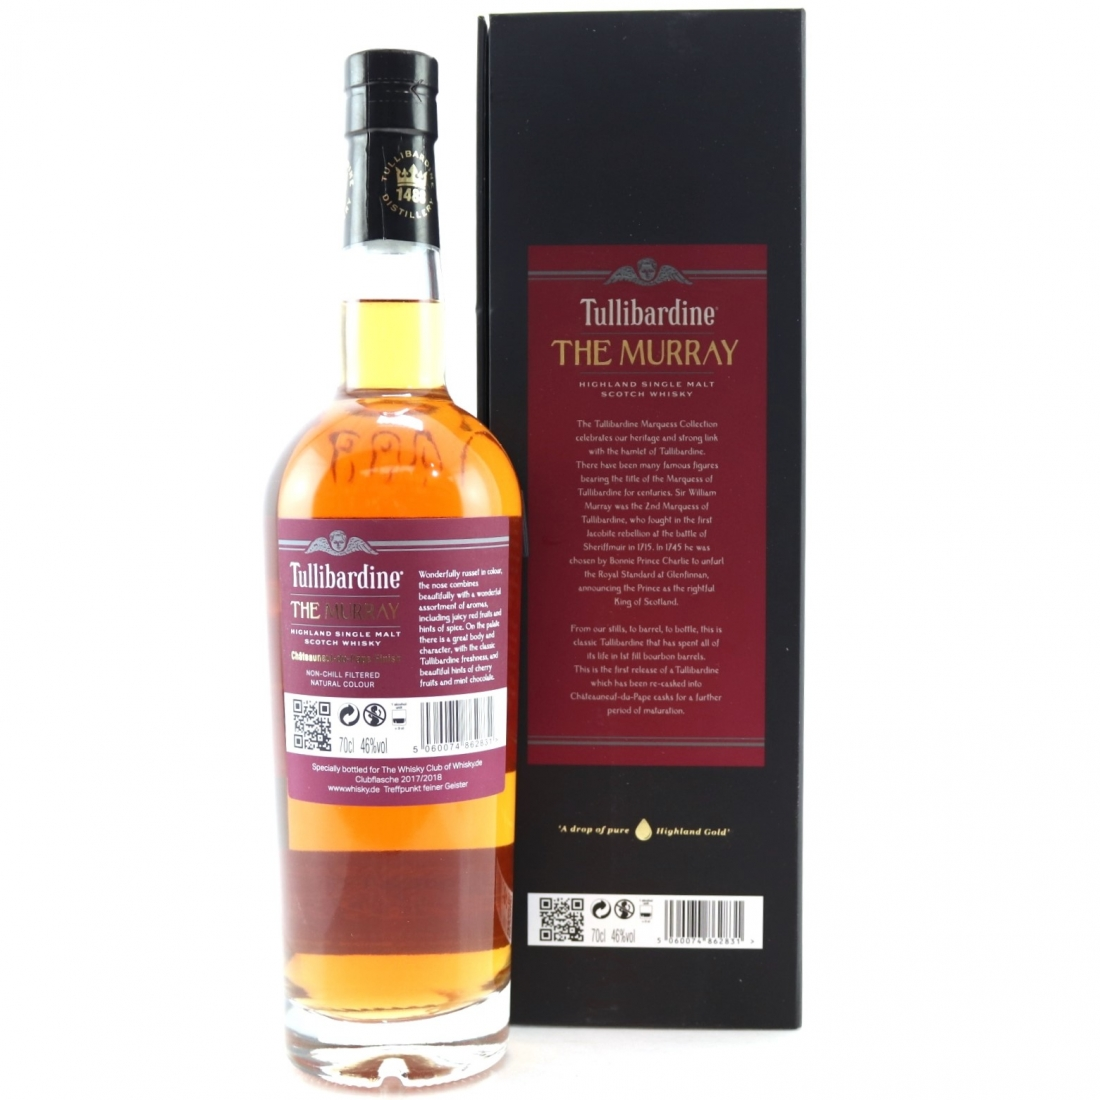 Tullibardine 2005 The Murray Cask Strength / The Marquess Collection